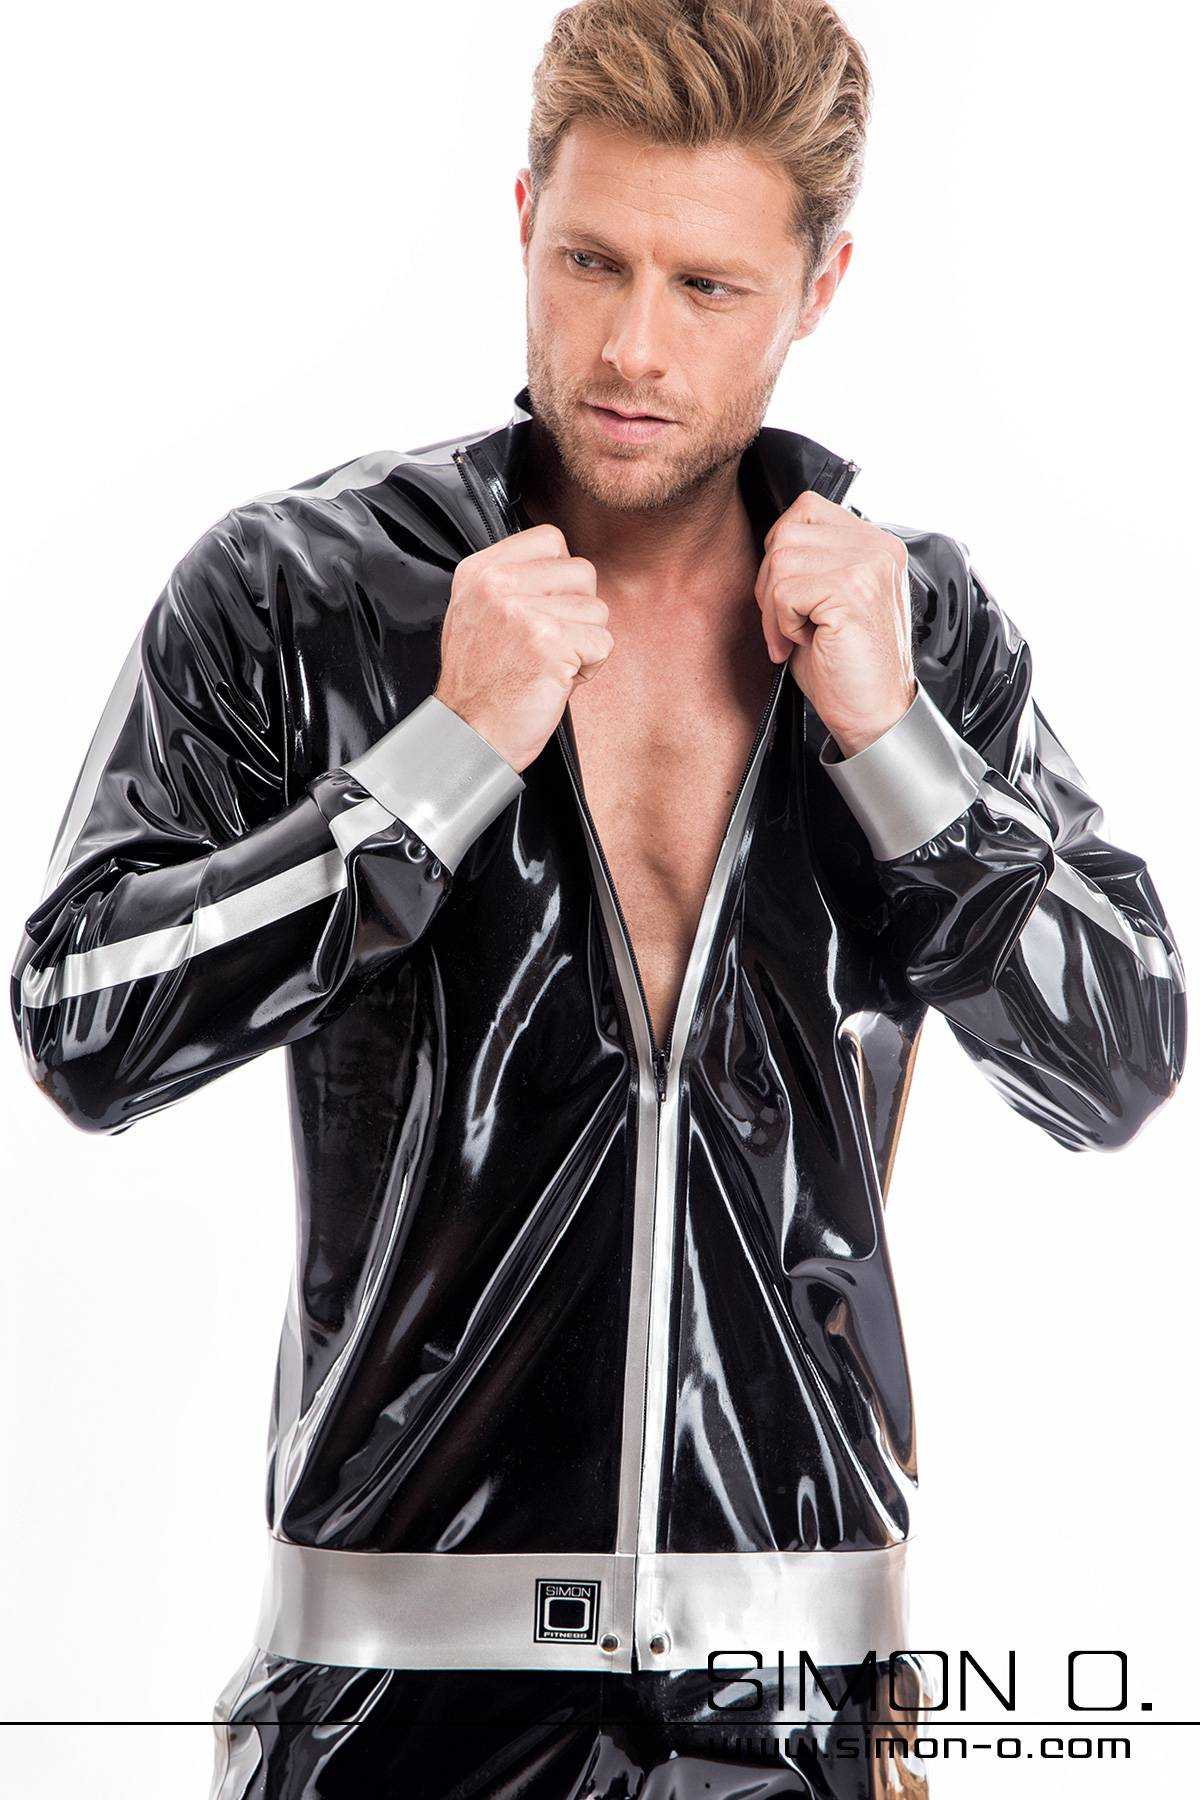 A man wears a shiny latex jacket with pockets in black and Simon O. Logo on the stand-up collar.